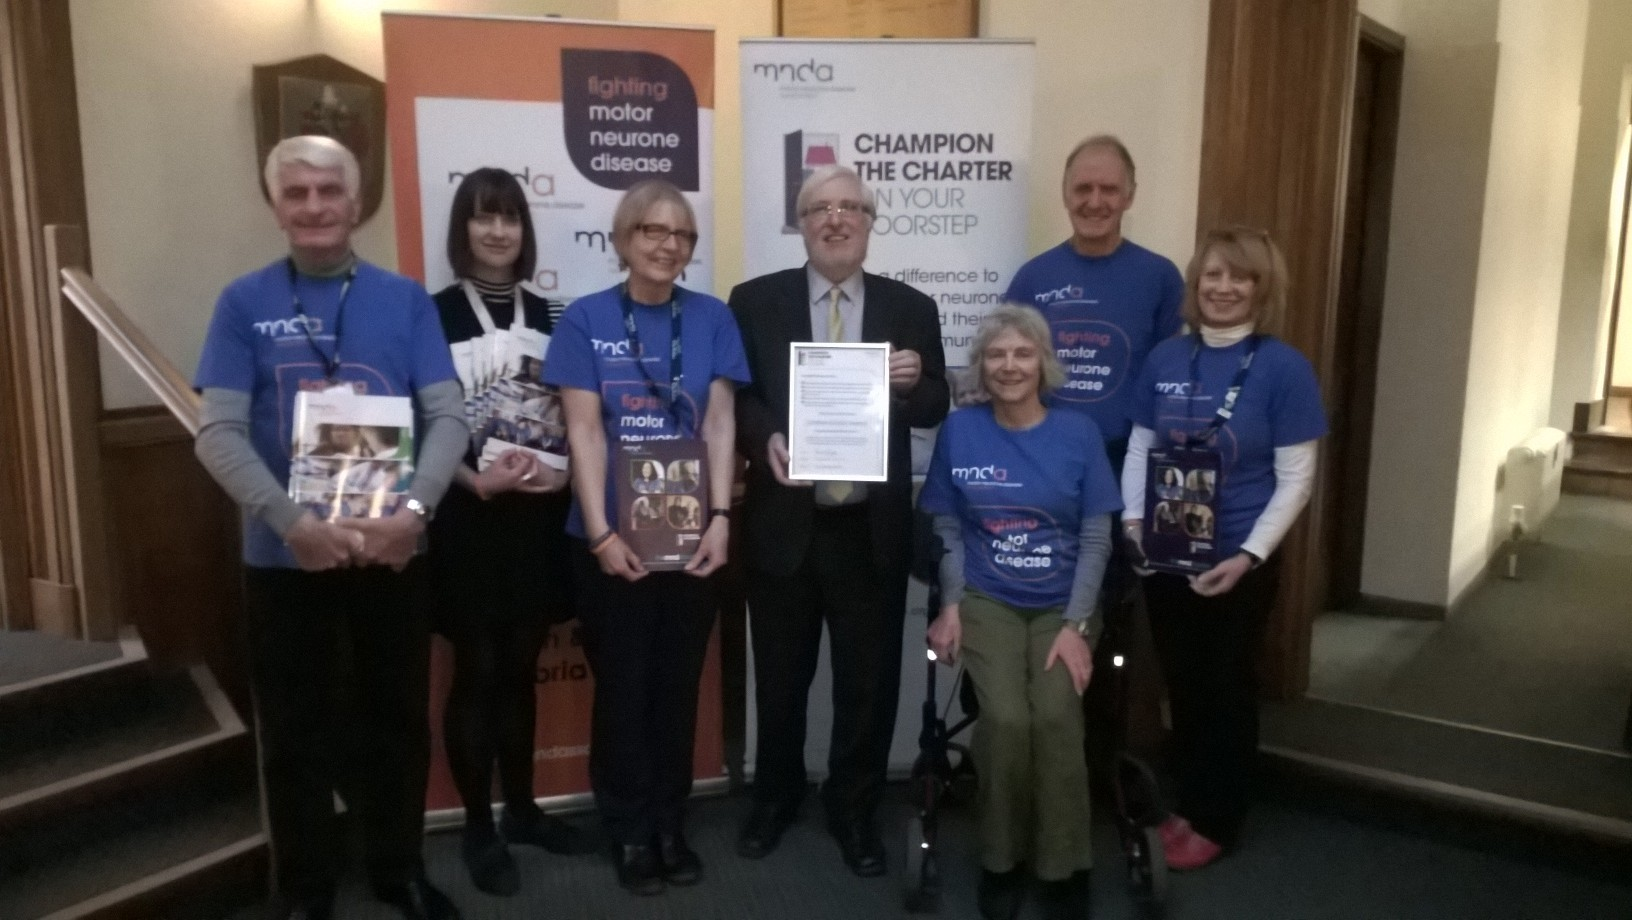 Cllr Peter Thornton with MND charter